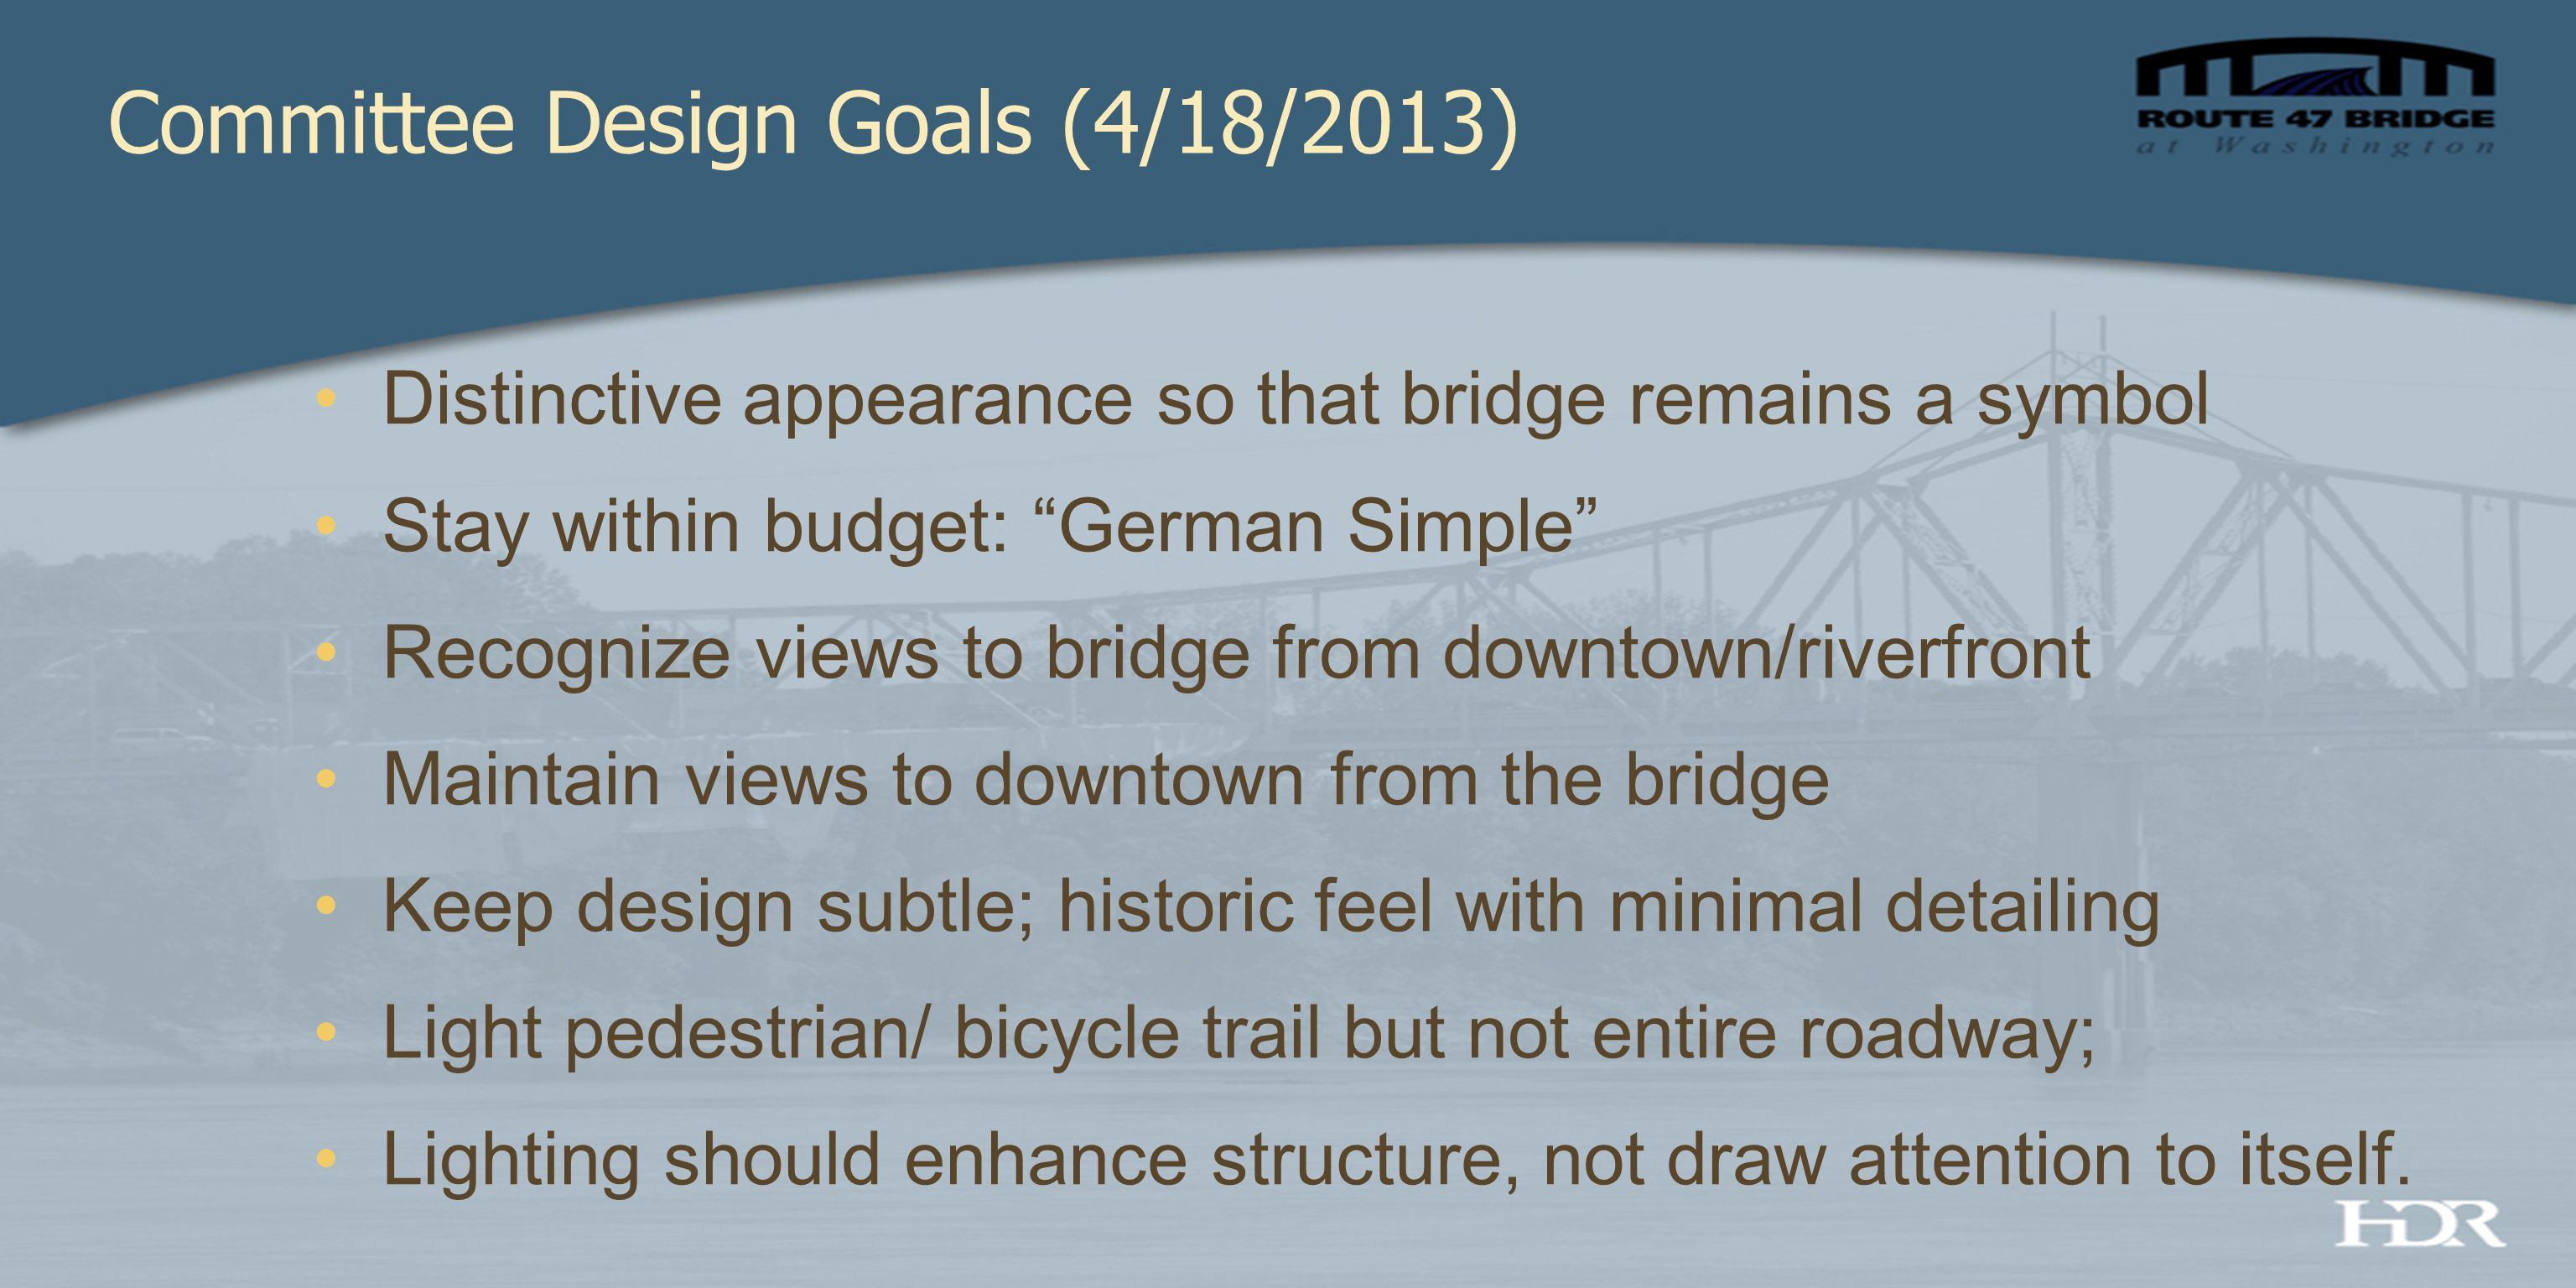 Previous Committee Selections: Variable Depth Girders ** ** MoDOT Funded Pier Shape – Gothic Pier ** One (1) Overlook Located at Pier 7 ** Railing – 27 Concrete Wall with Vertical Railing Element Girder Lighting – Girder Wash Fade Pier Lighting Overhead Pier Element – Curved Truss w/ Sun Shade Low Level Trail Lighting